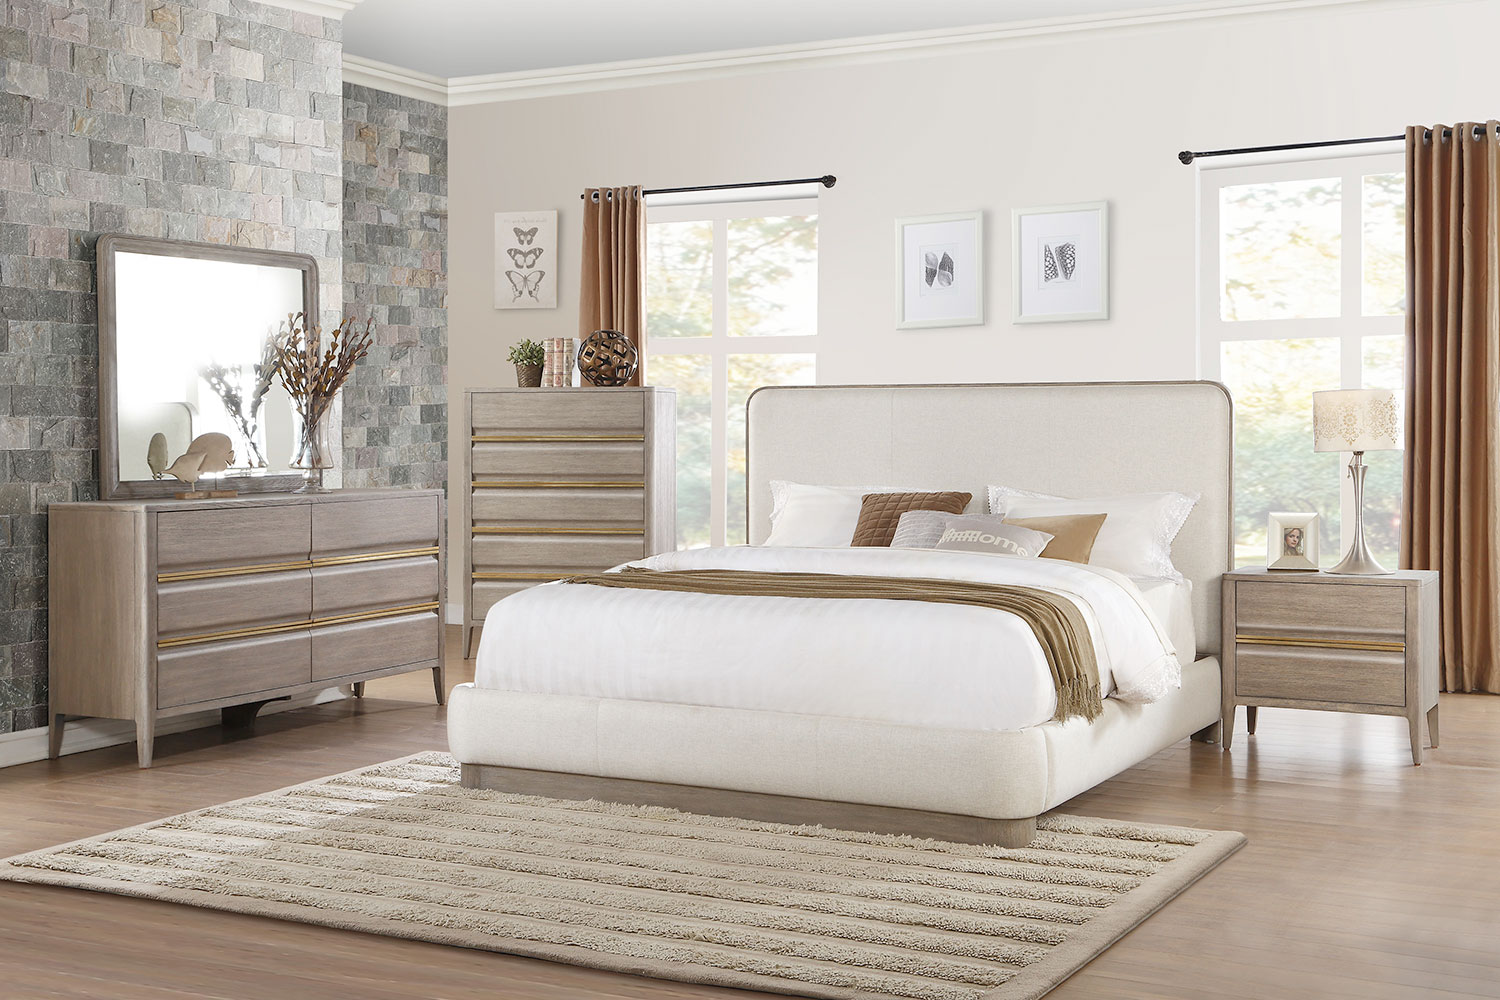 Homelegance Aristide Upholstered Platform Bedroom Set - Gold and Weathered Grey